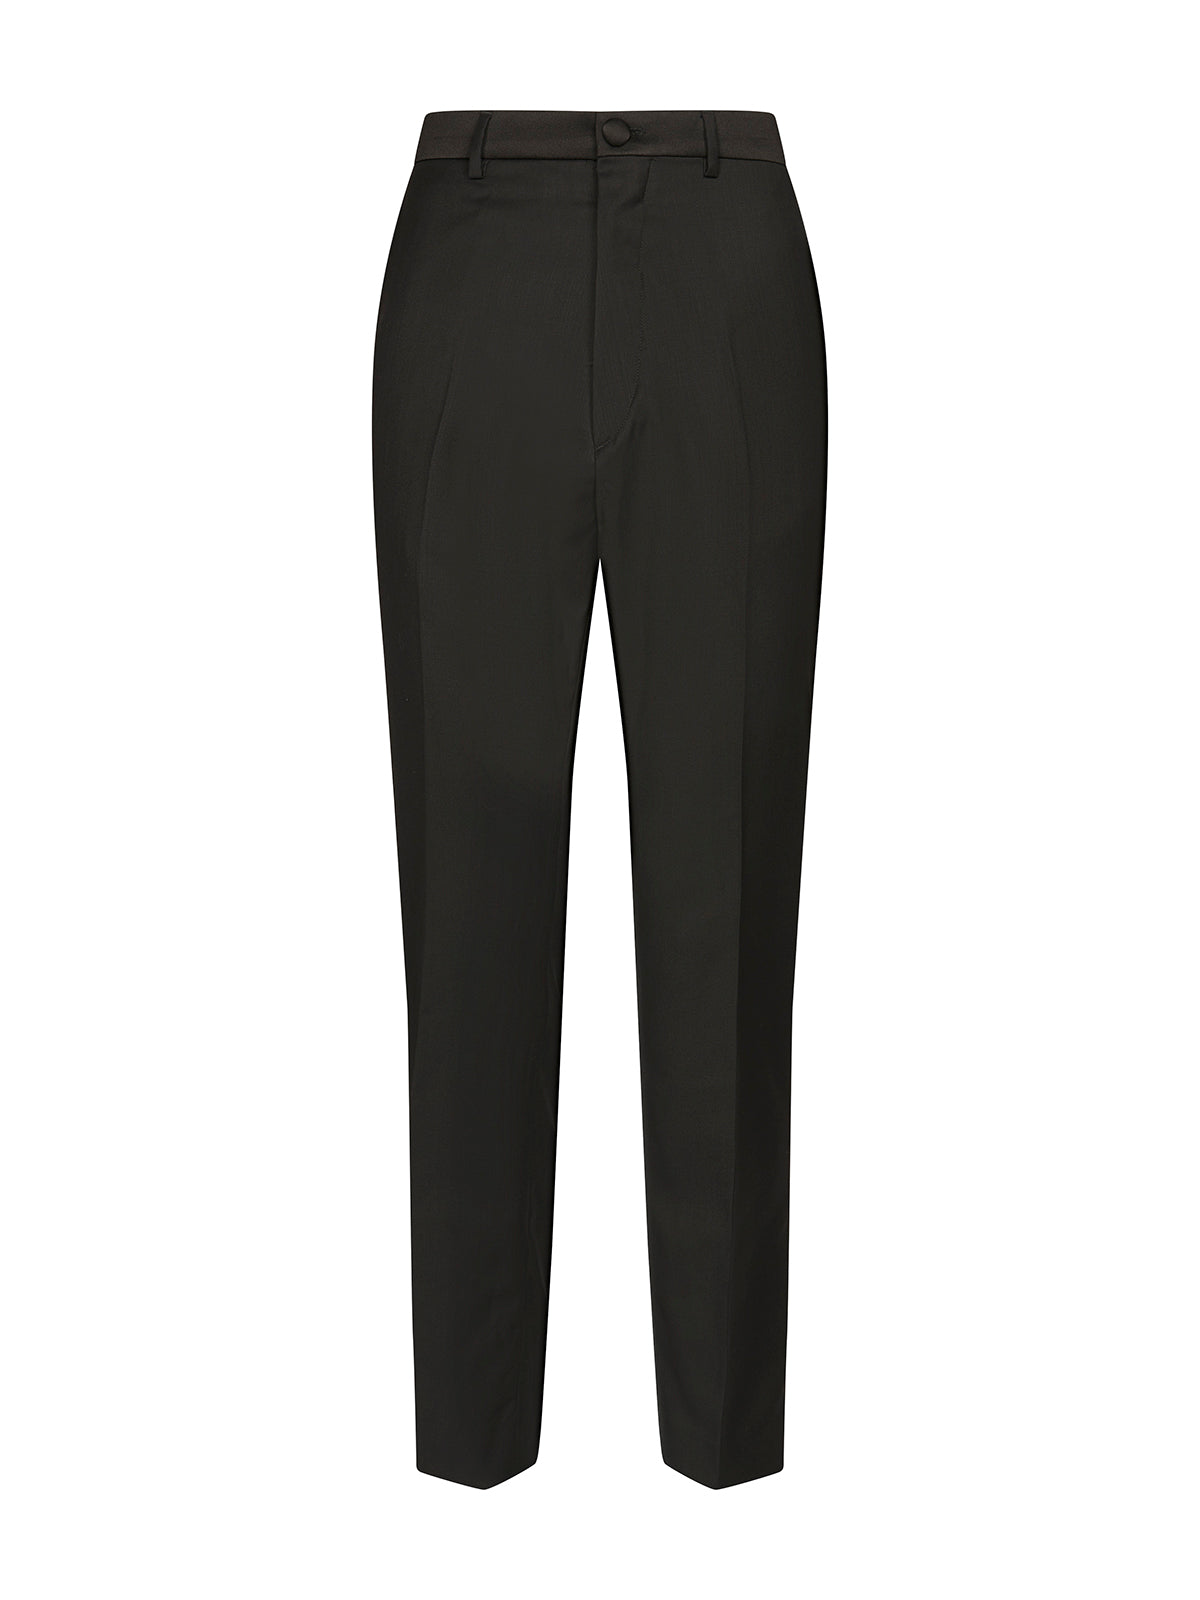 SMOKER PRINCE TROUSERS BLACK